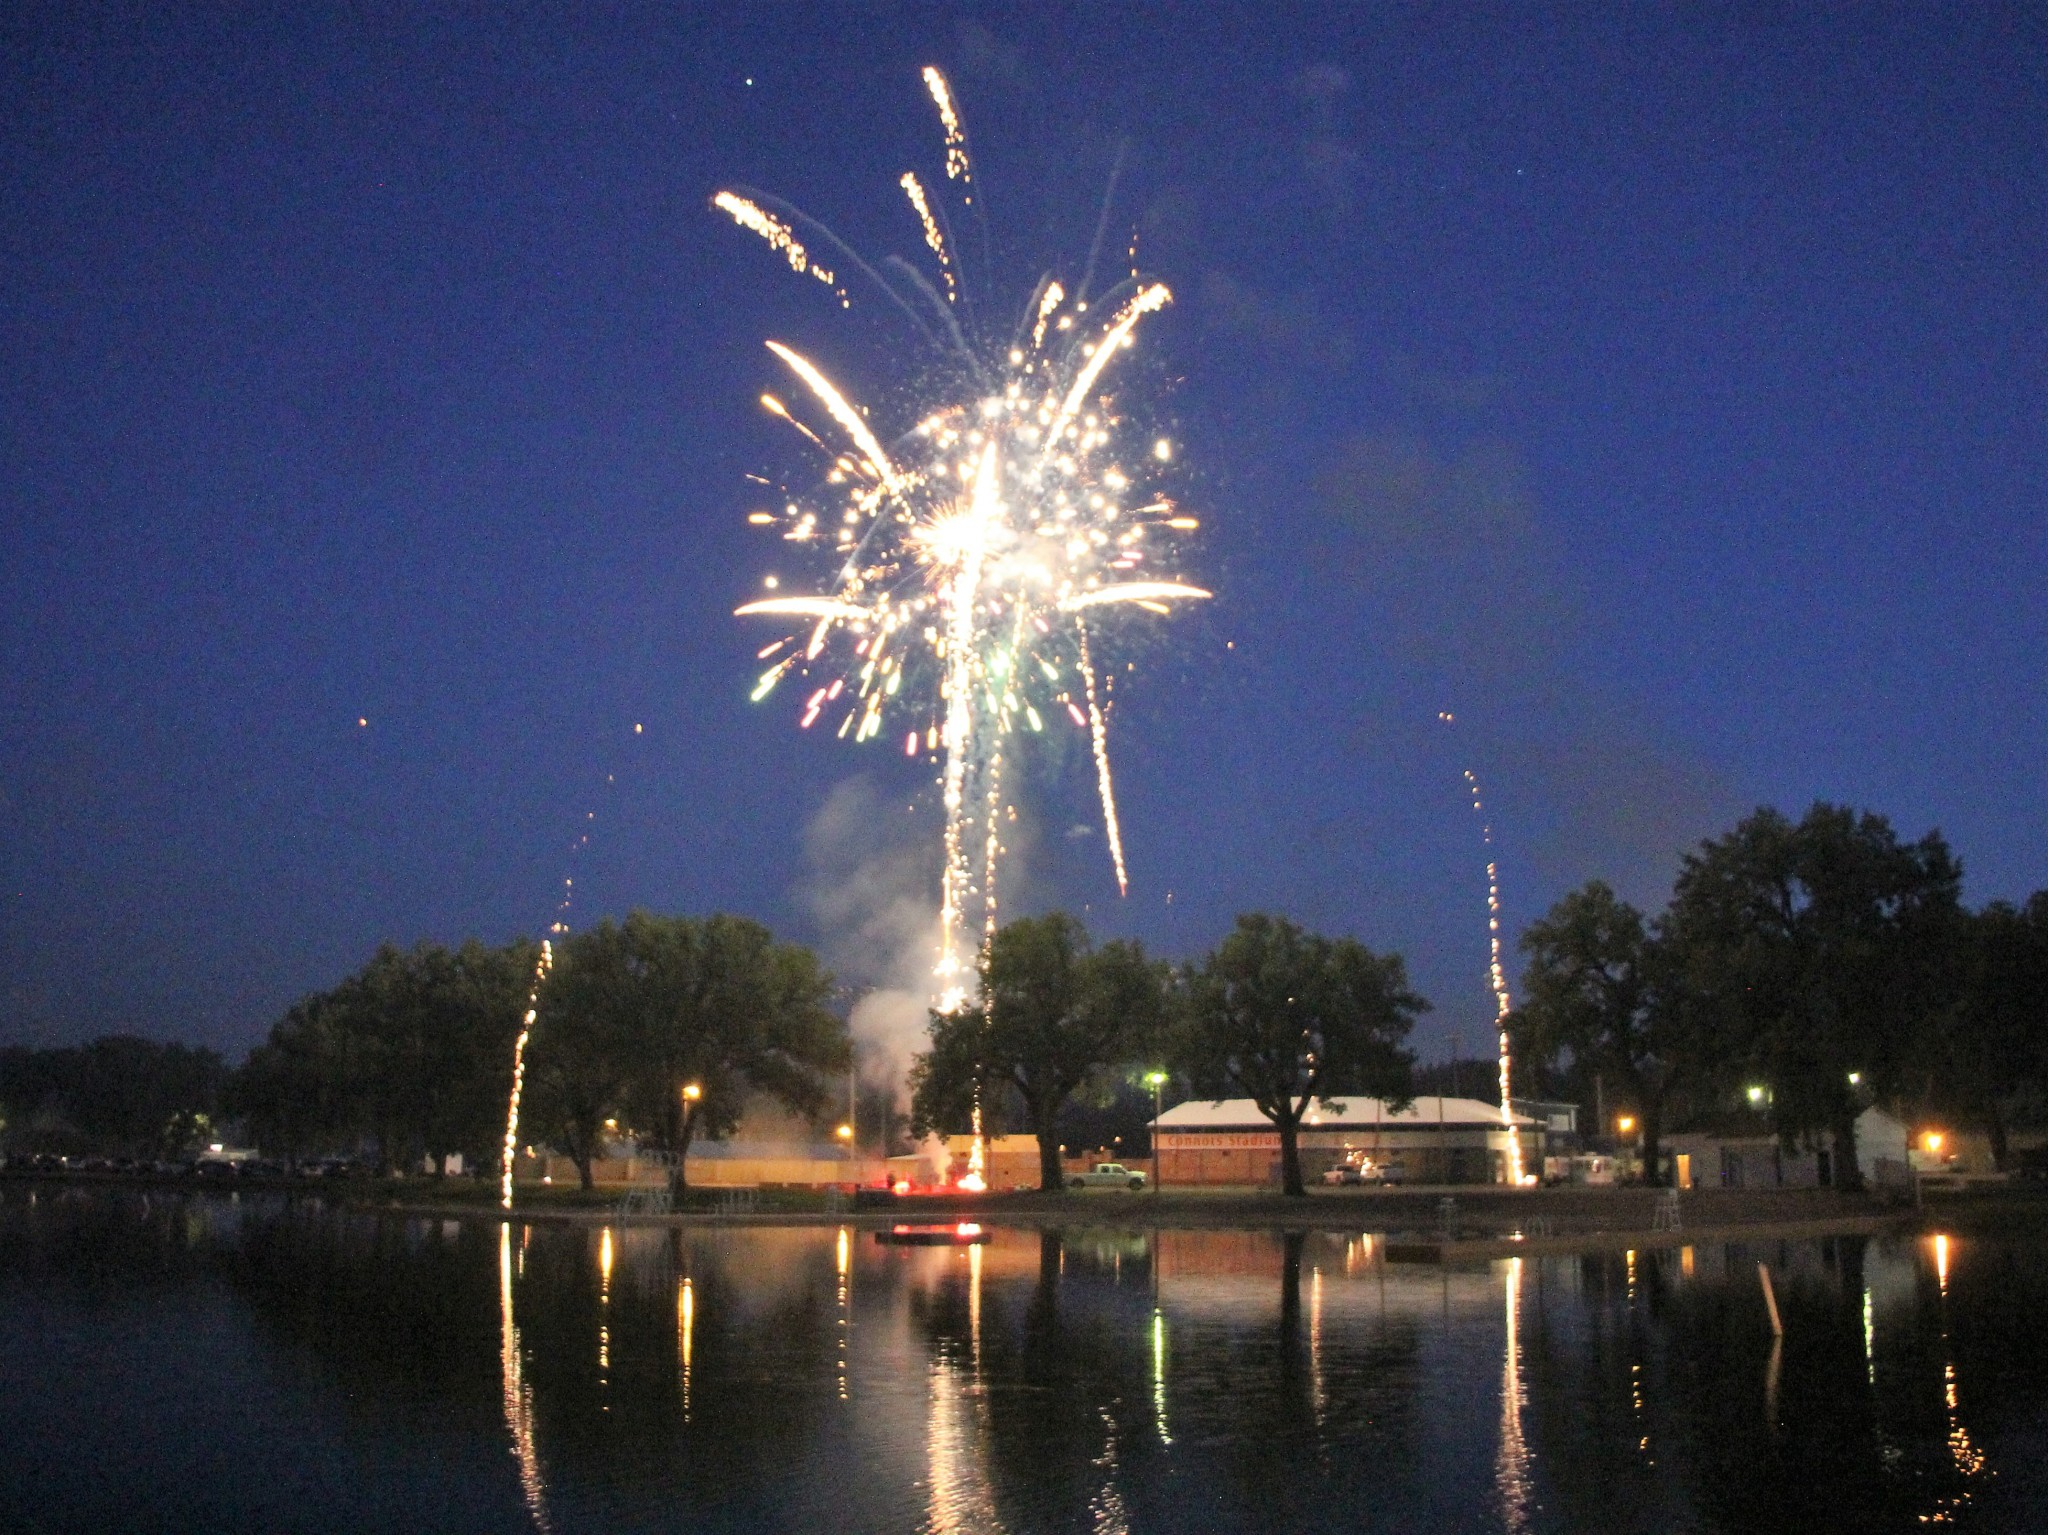 <strong>STAR PHOTO/Sharon Moore</strong><strong>The Miles City VFW set up a beautiful fireworks display Wednesday night for the entire community. </strong>